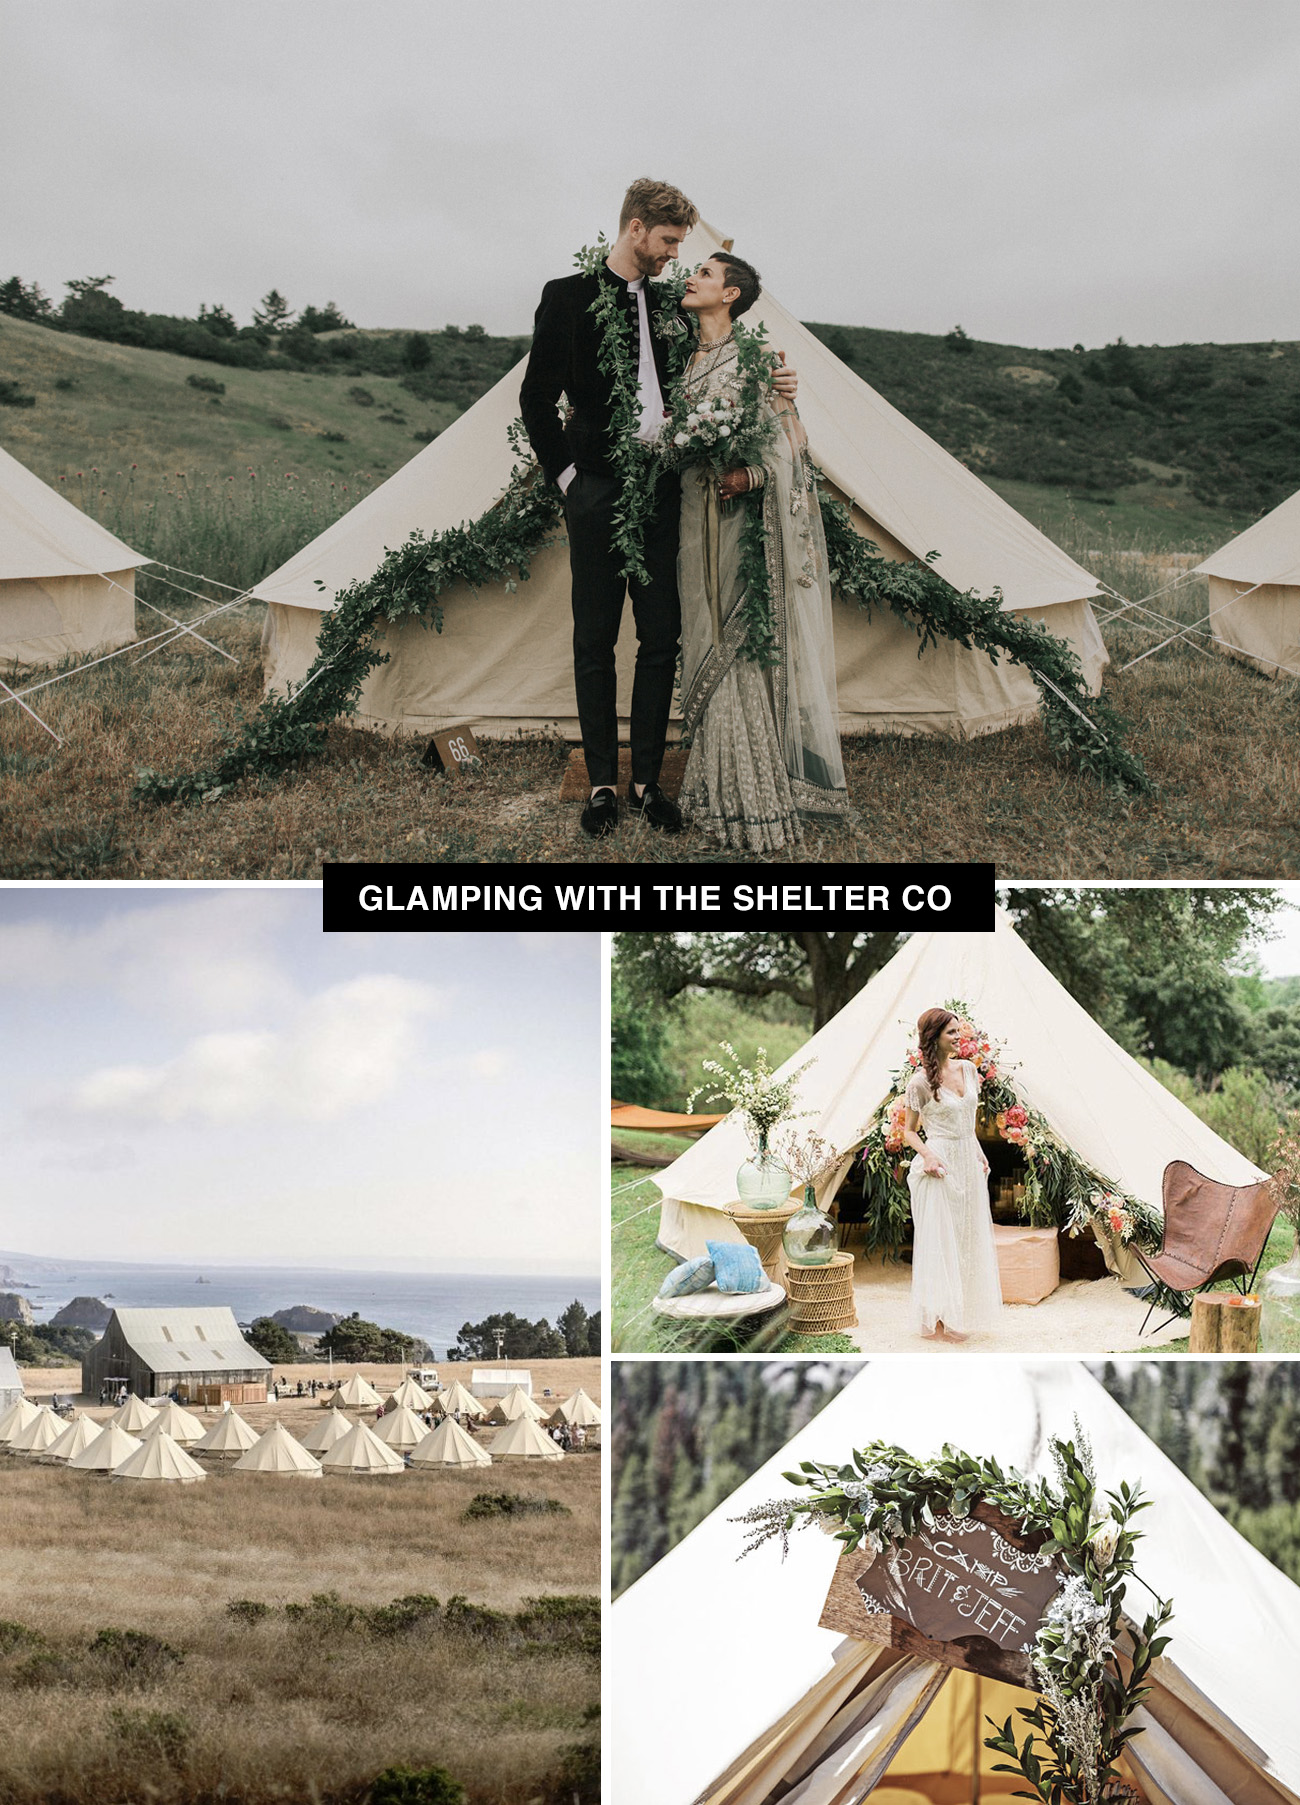 Glamping wedding with the Shelter Co allows you to create your own place to get married and rock it like a festival